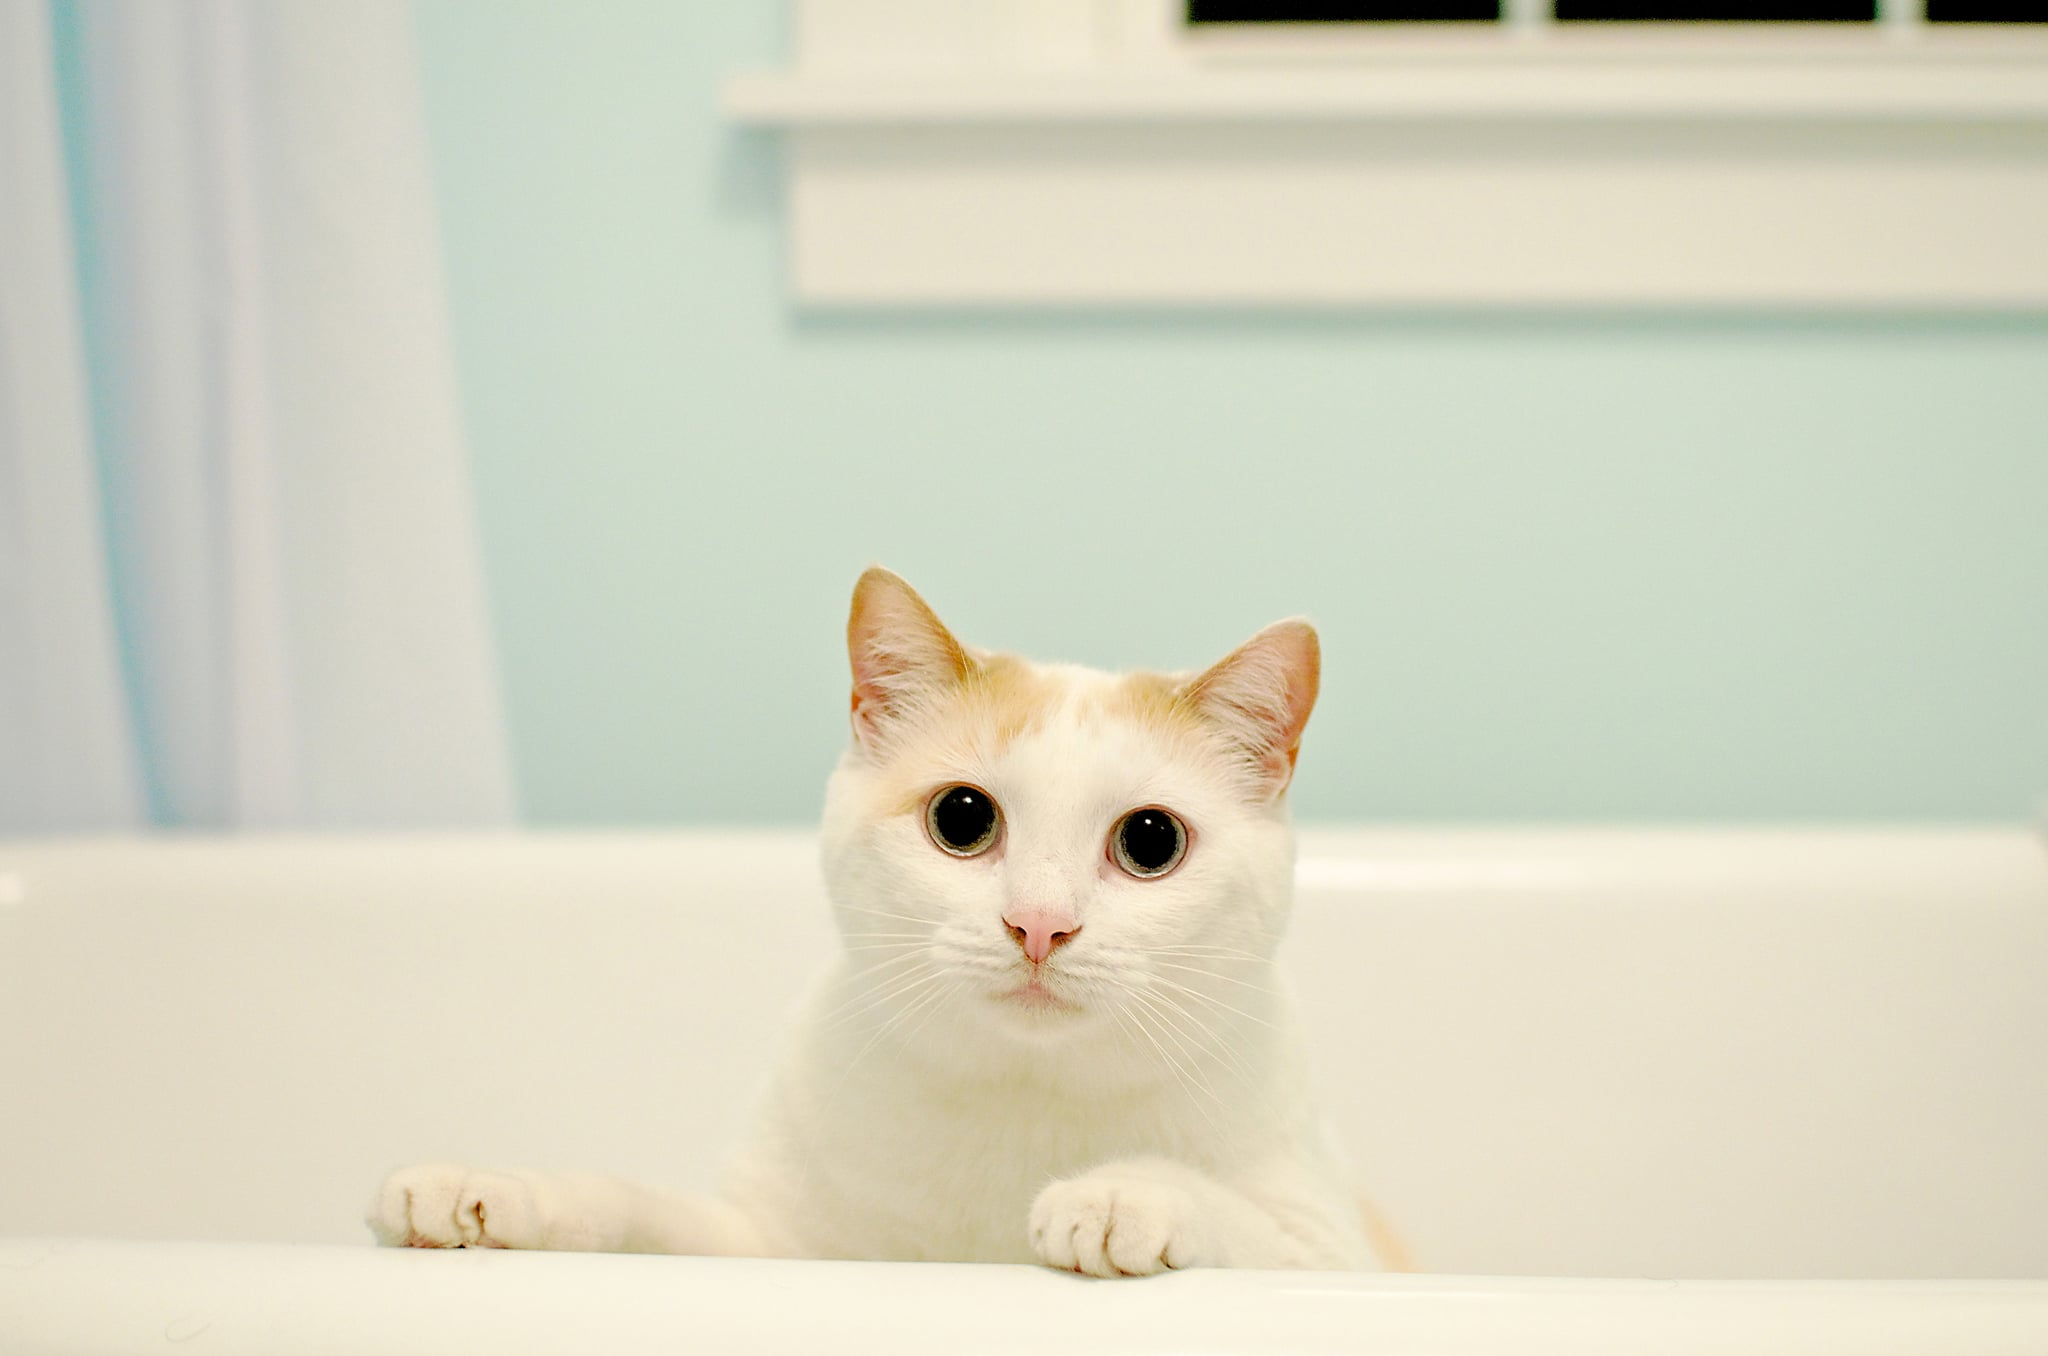 White cat standing in bath tub.